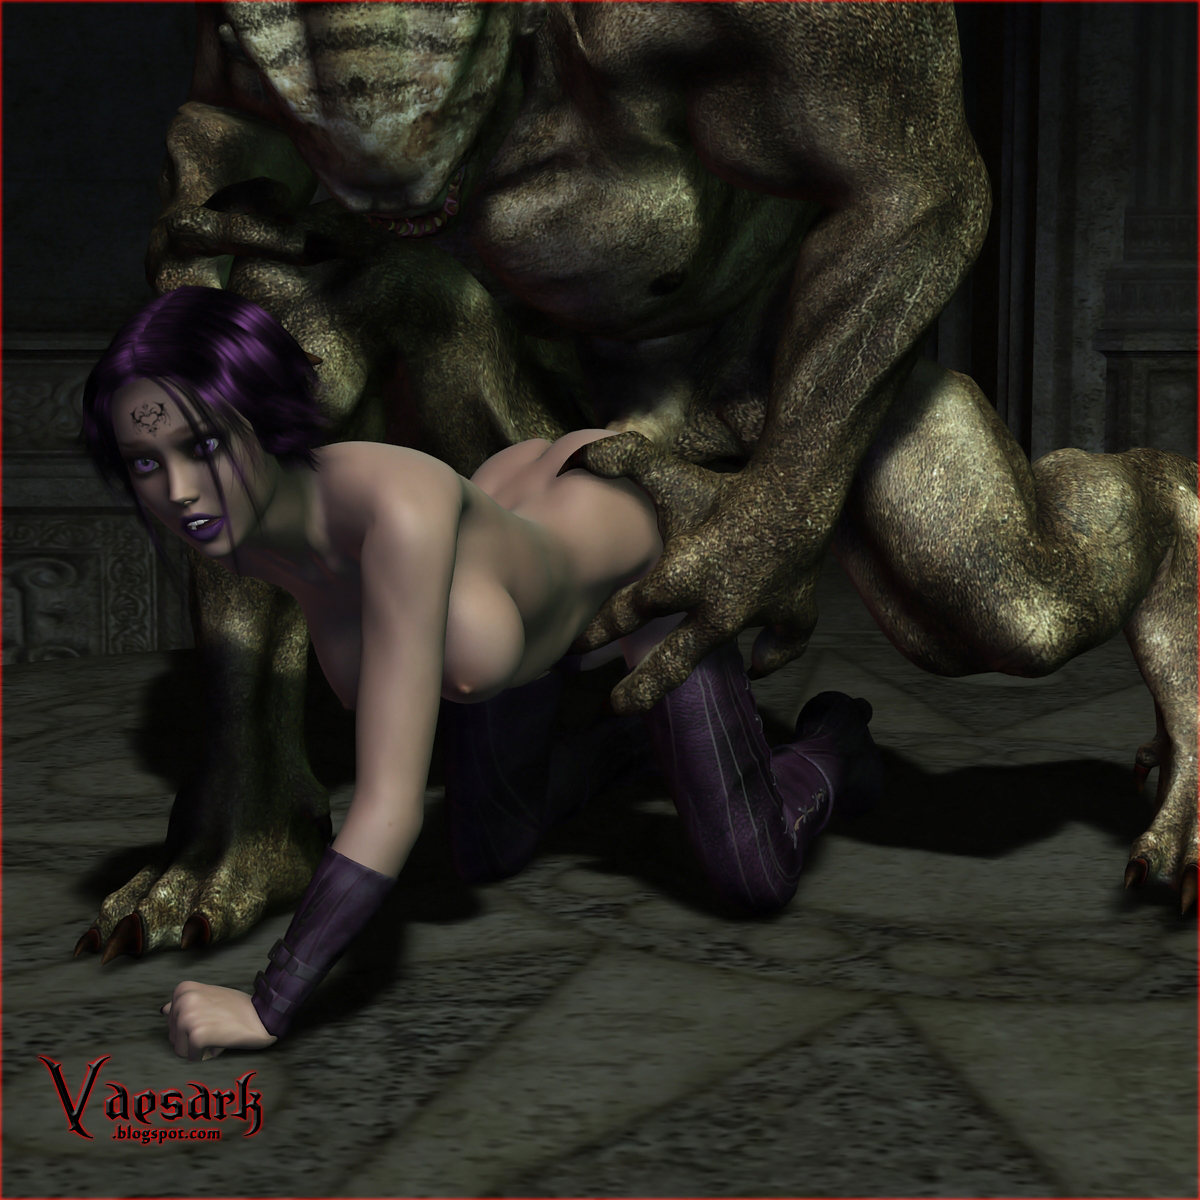 Three monsters abuse elf girl nudes scene